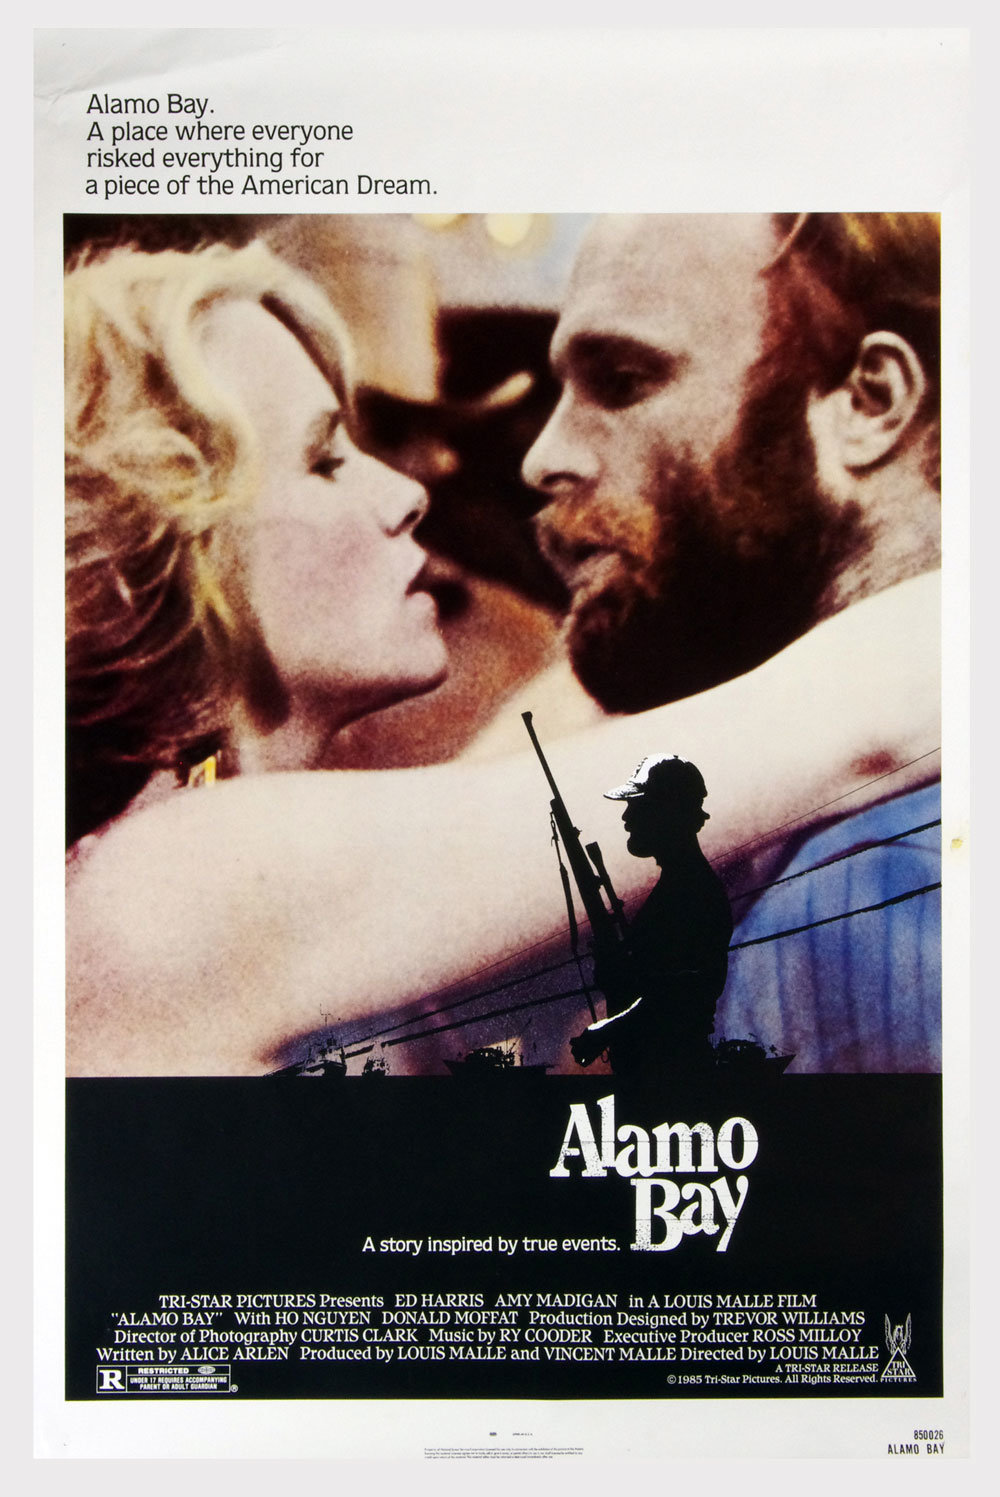 Alamo Bay Movie Poster 1985 Ed Harris 27 x 41